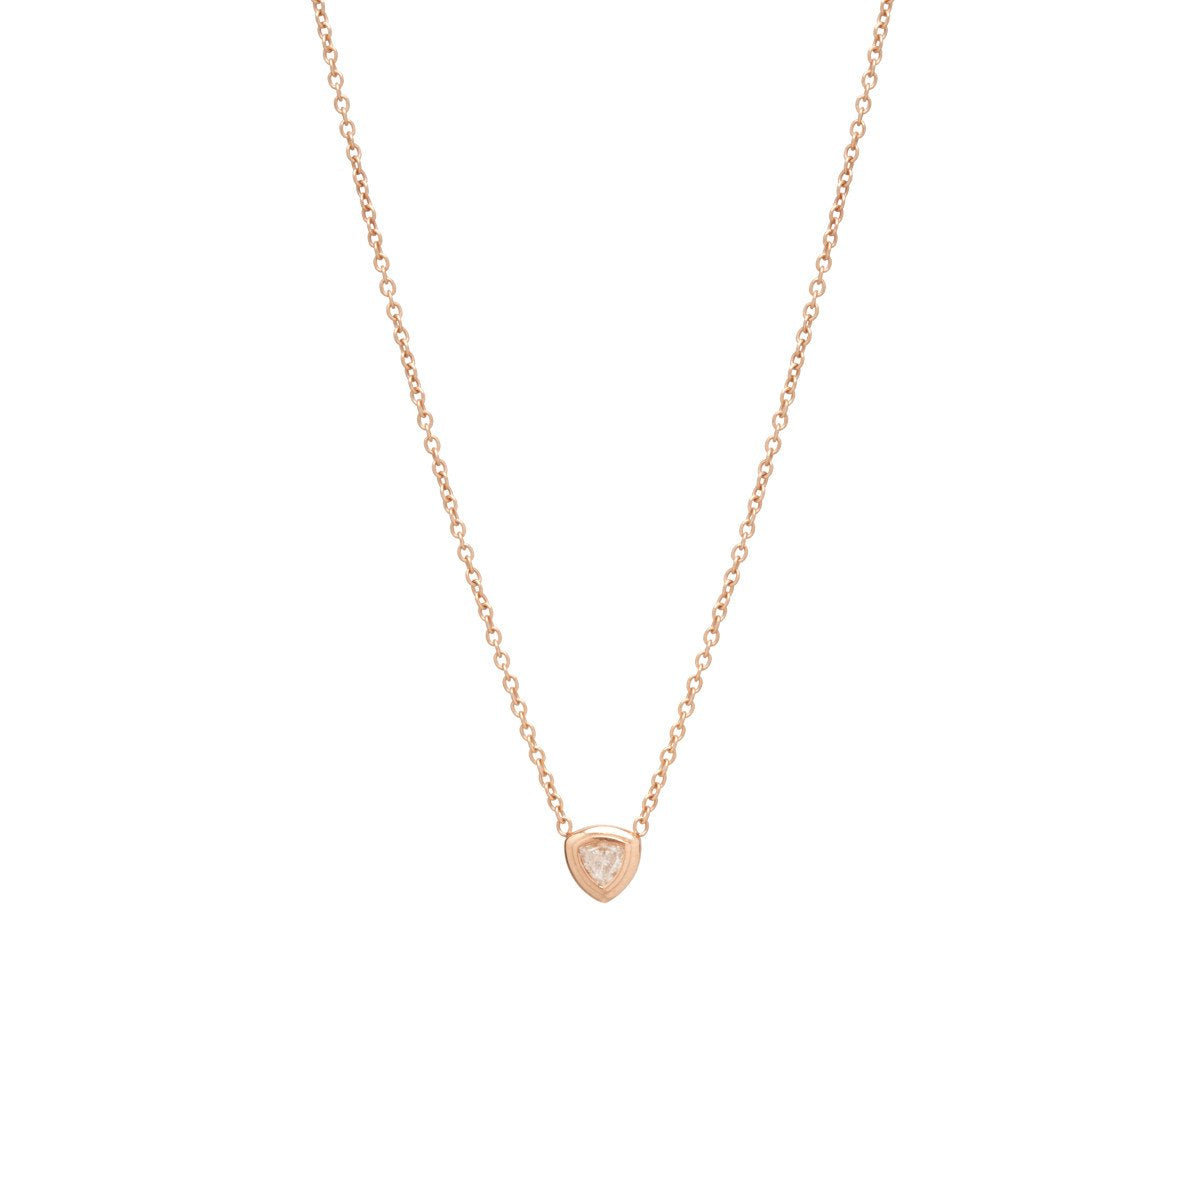 Small Trillion Diamond Necklace